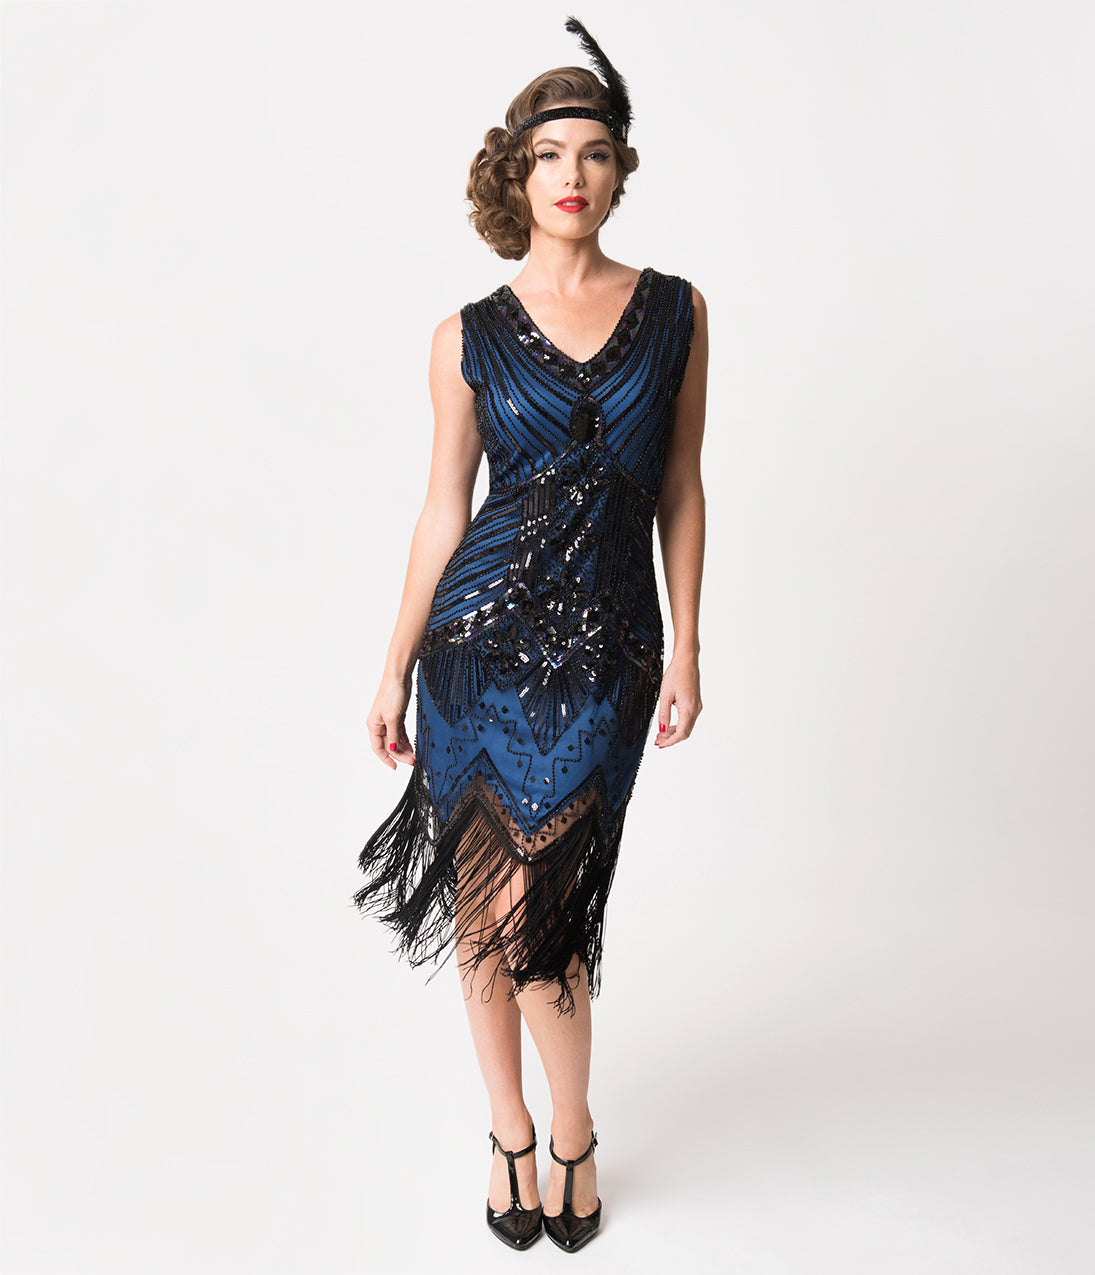 1920s Evening Dresses & Formal Gowns Unique Vintage 1920S Deco Navy Blue  Black Sequin Veronique Fringe Flapper Dress $98.00 AT vintagedancer.com